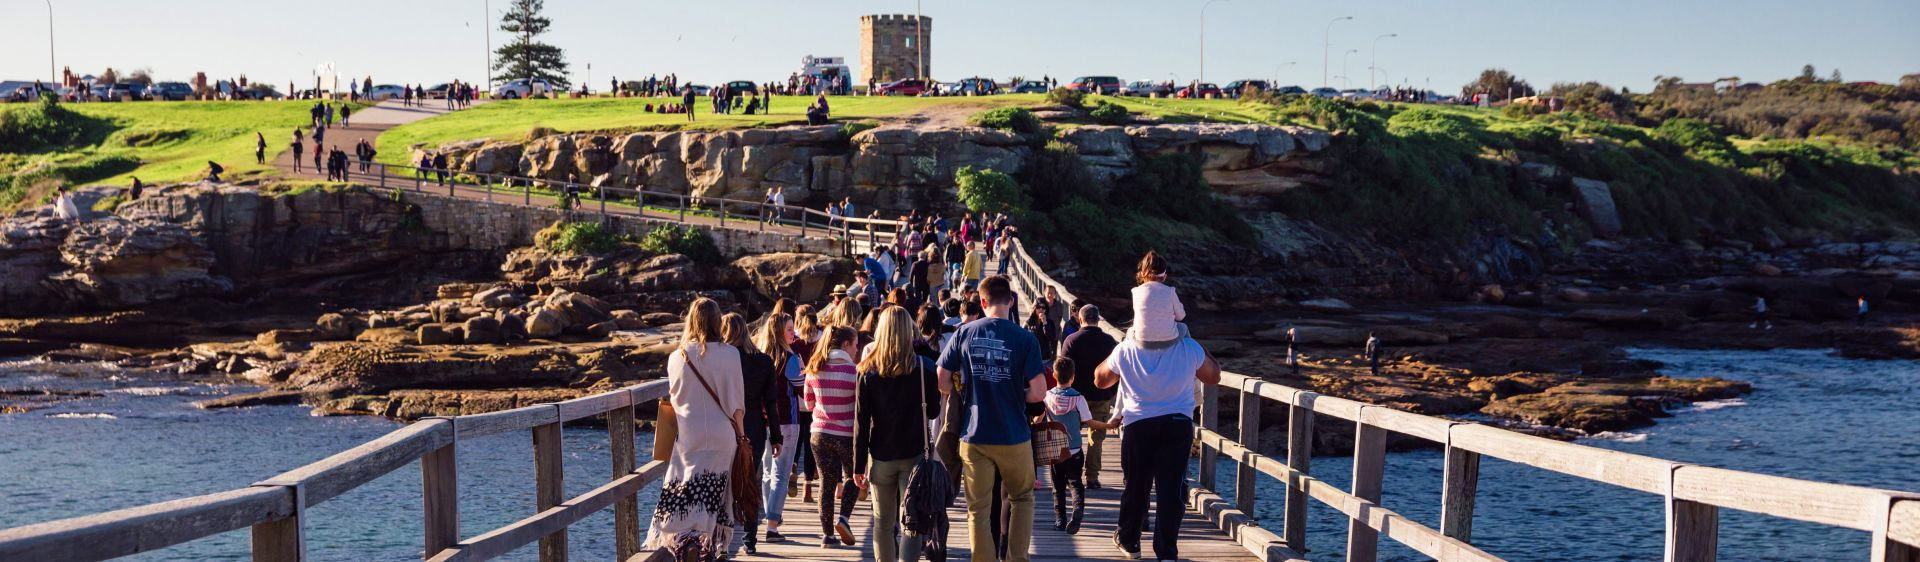 Groups crossing the footbridge at historic Bare Island Fort, La Perouse